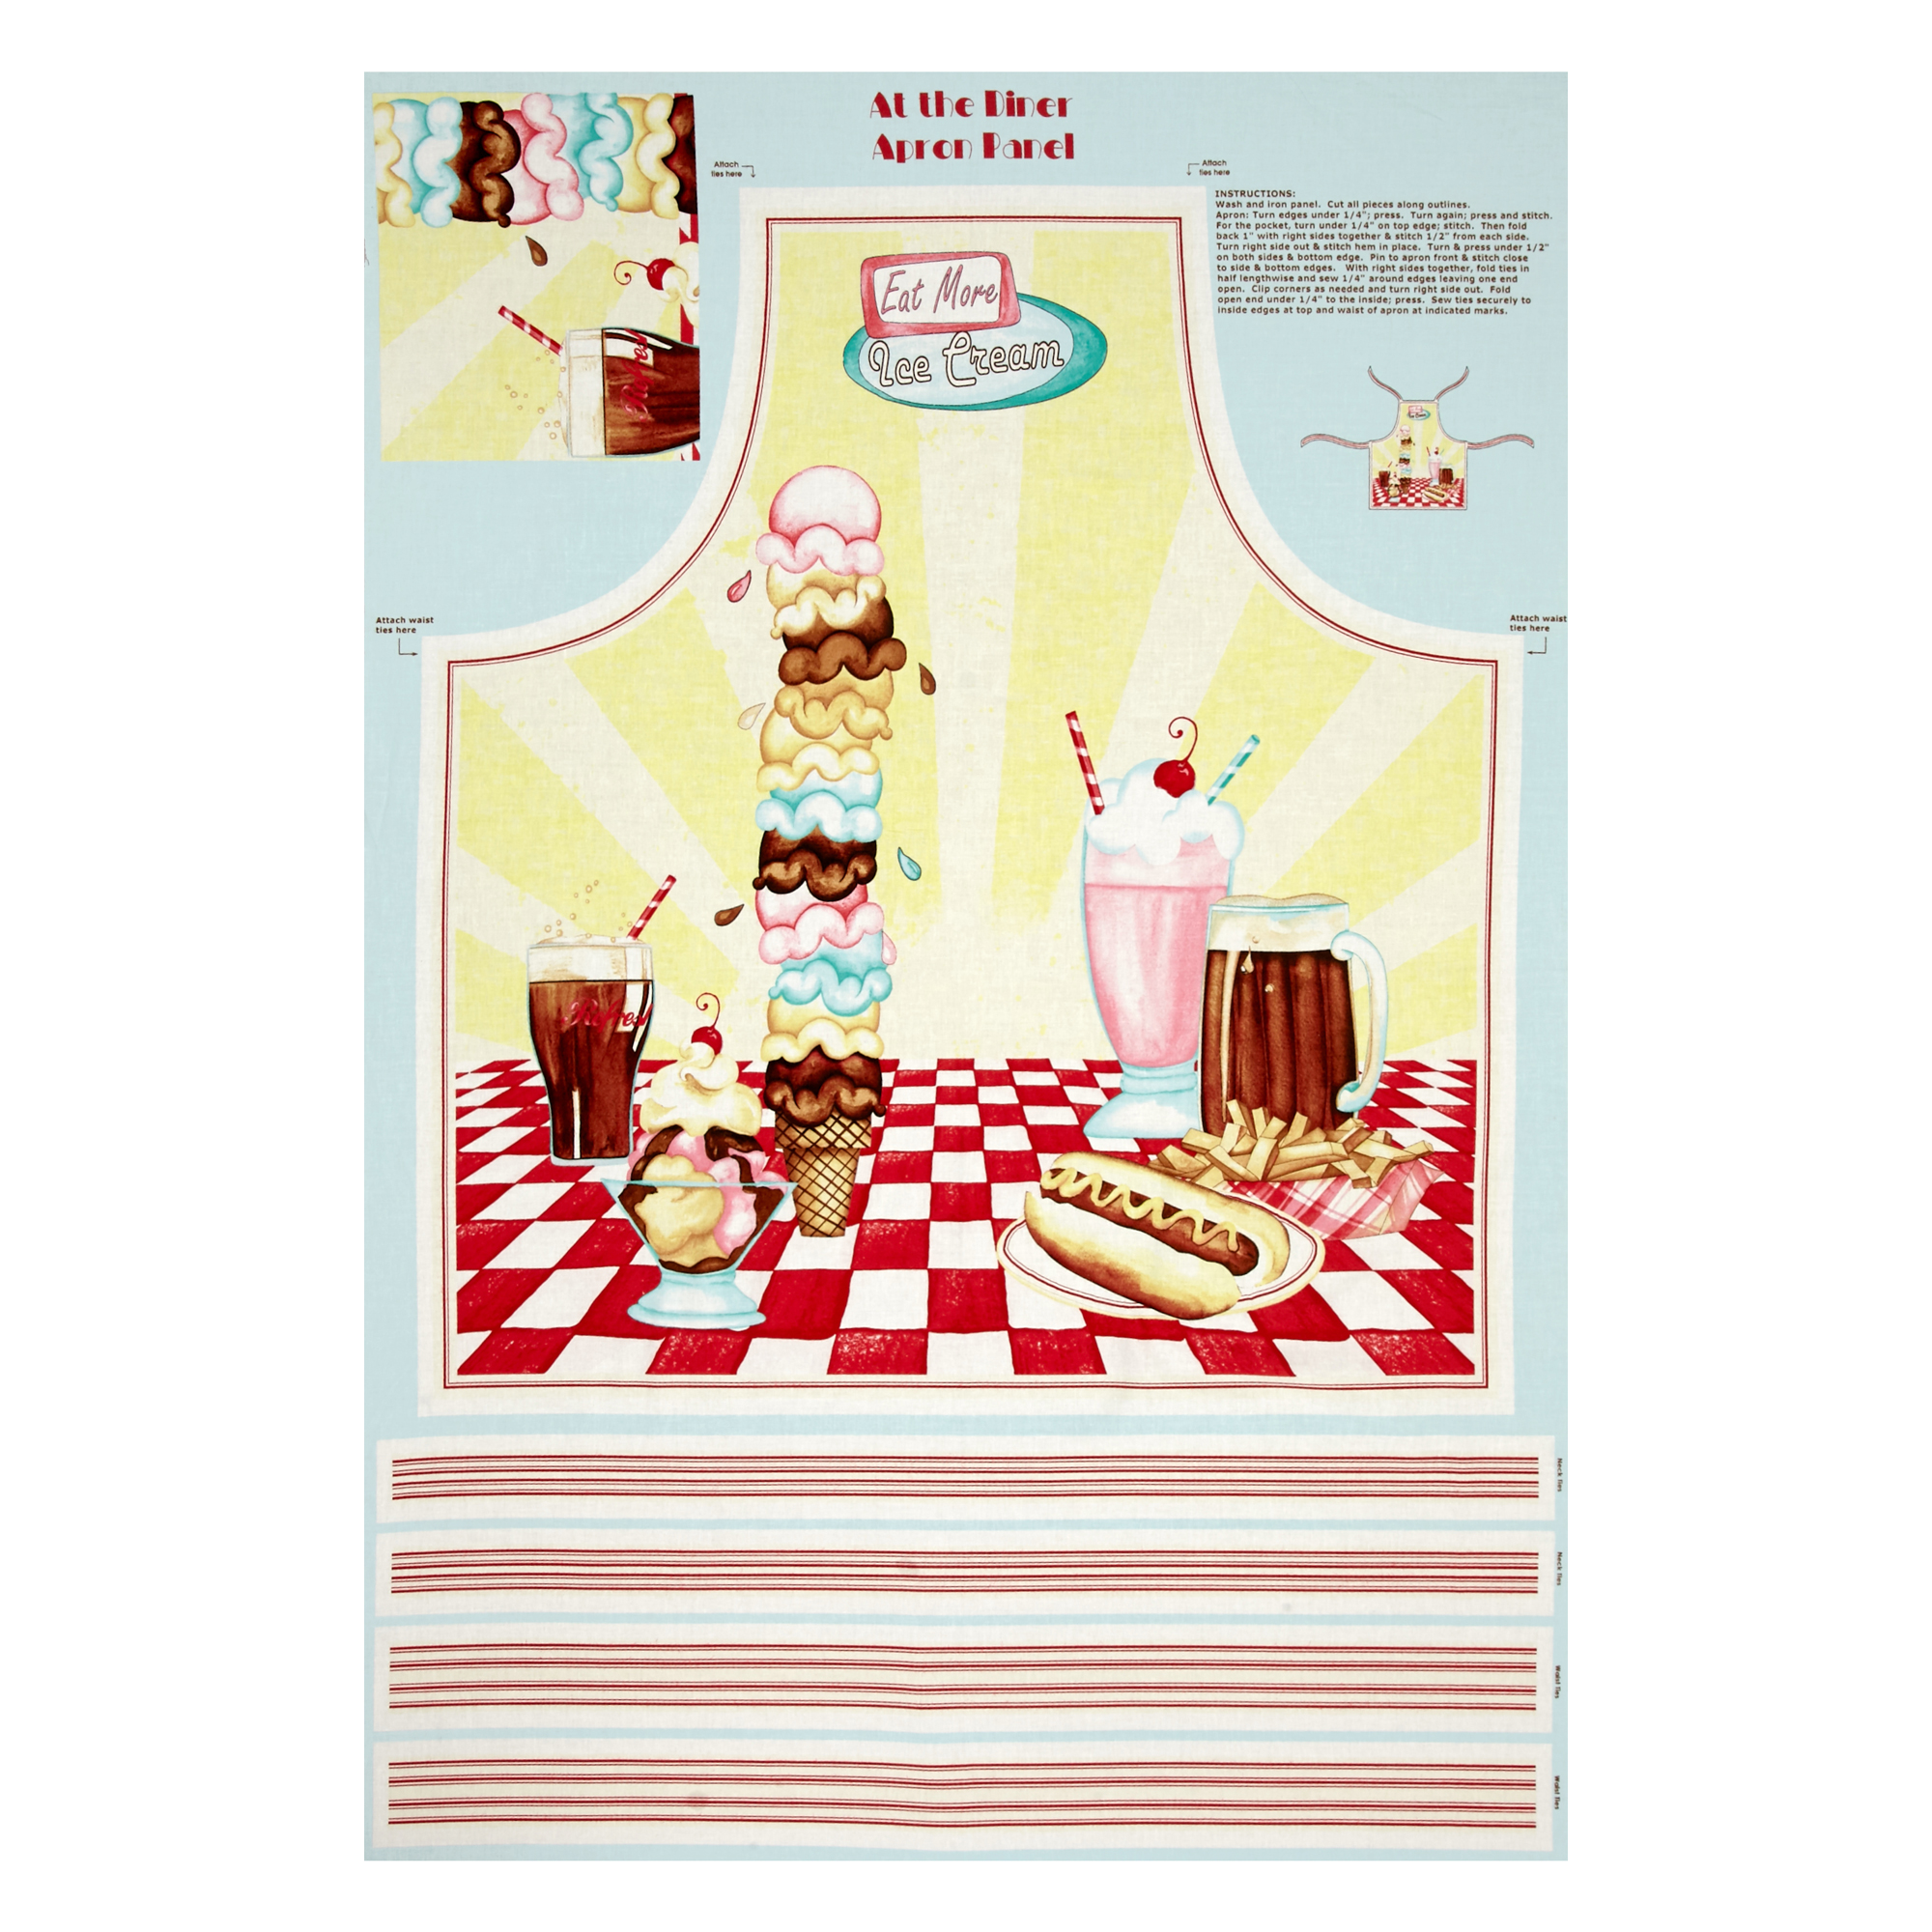 Old Fashioned Aprons & Patterns At The Diner Apron 24 Panel Multi Fabric By The Yard $9.48 AT vintagedancer.com